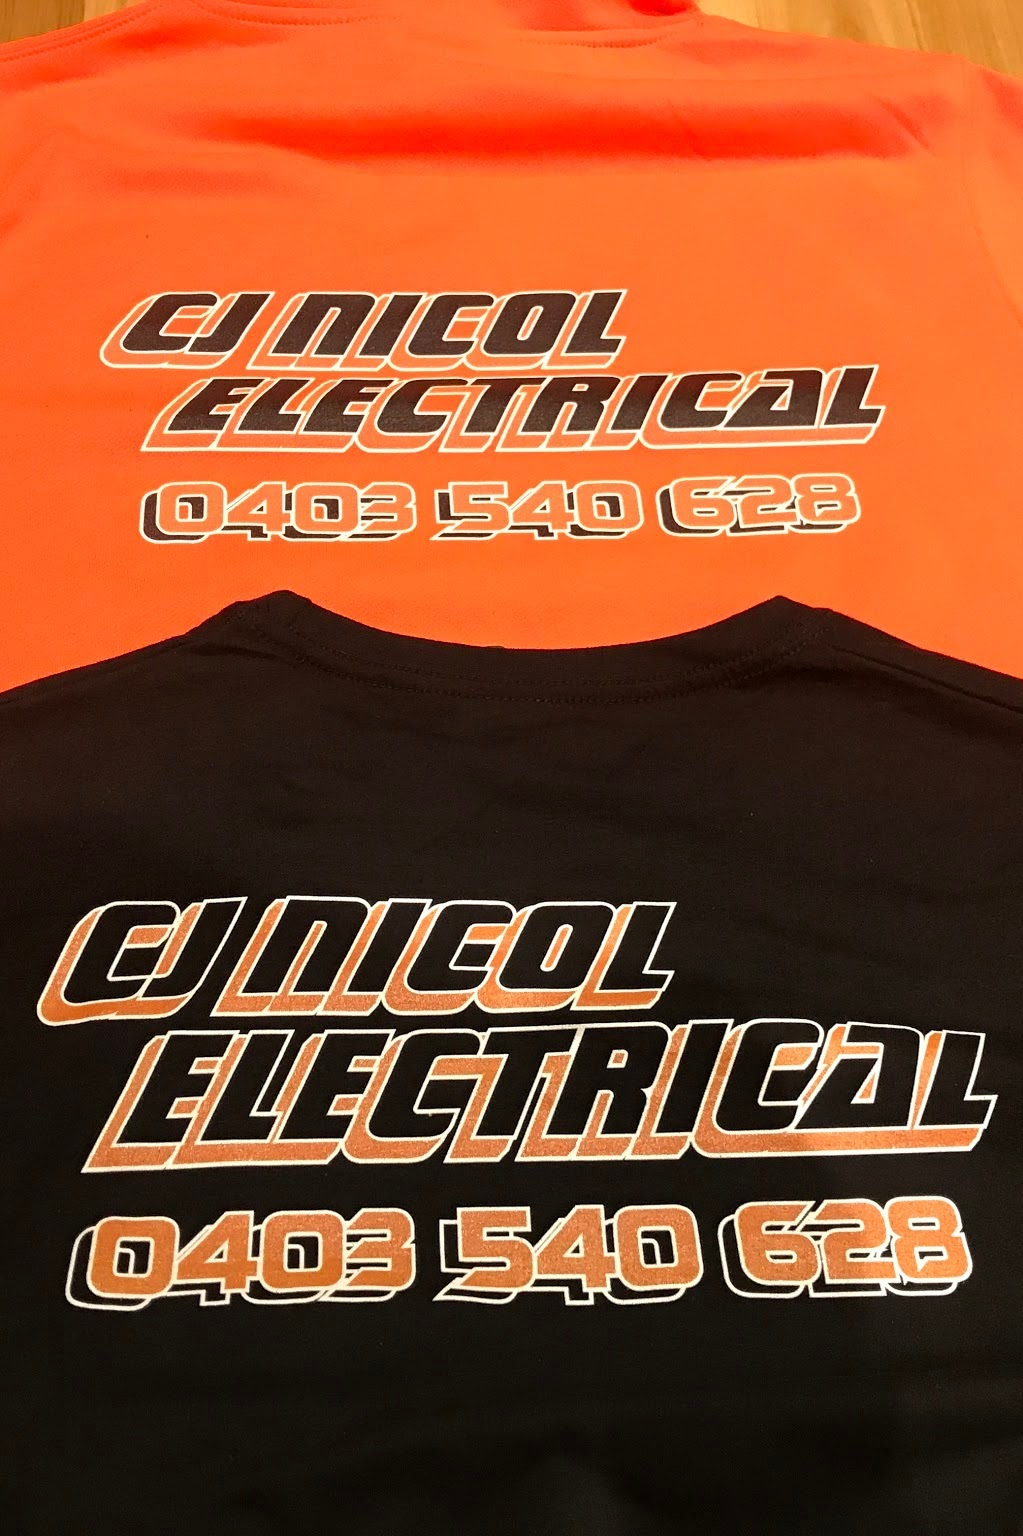 C J Nicol Electrical | electrician | 320 Shannon Ave, Newtown VIC 3220, Australia | 0403540628 OR +61 403 540 628